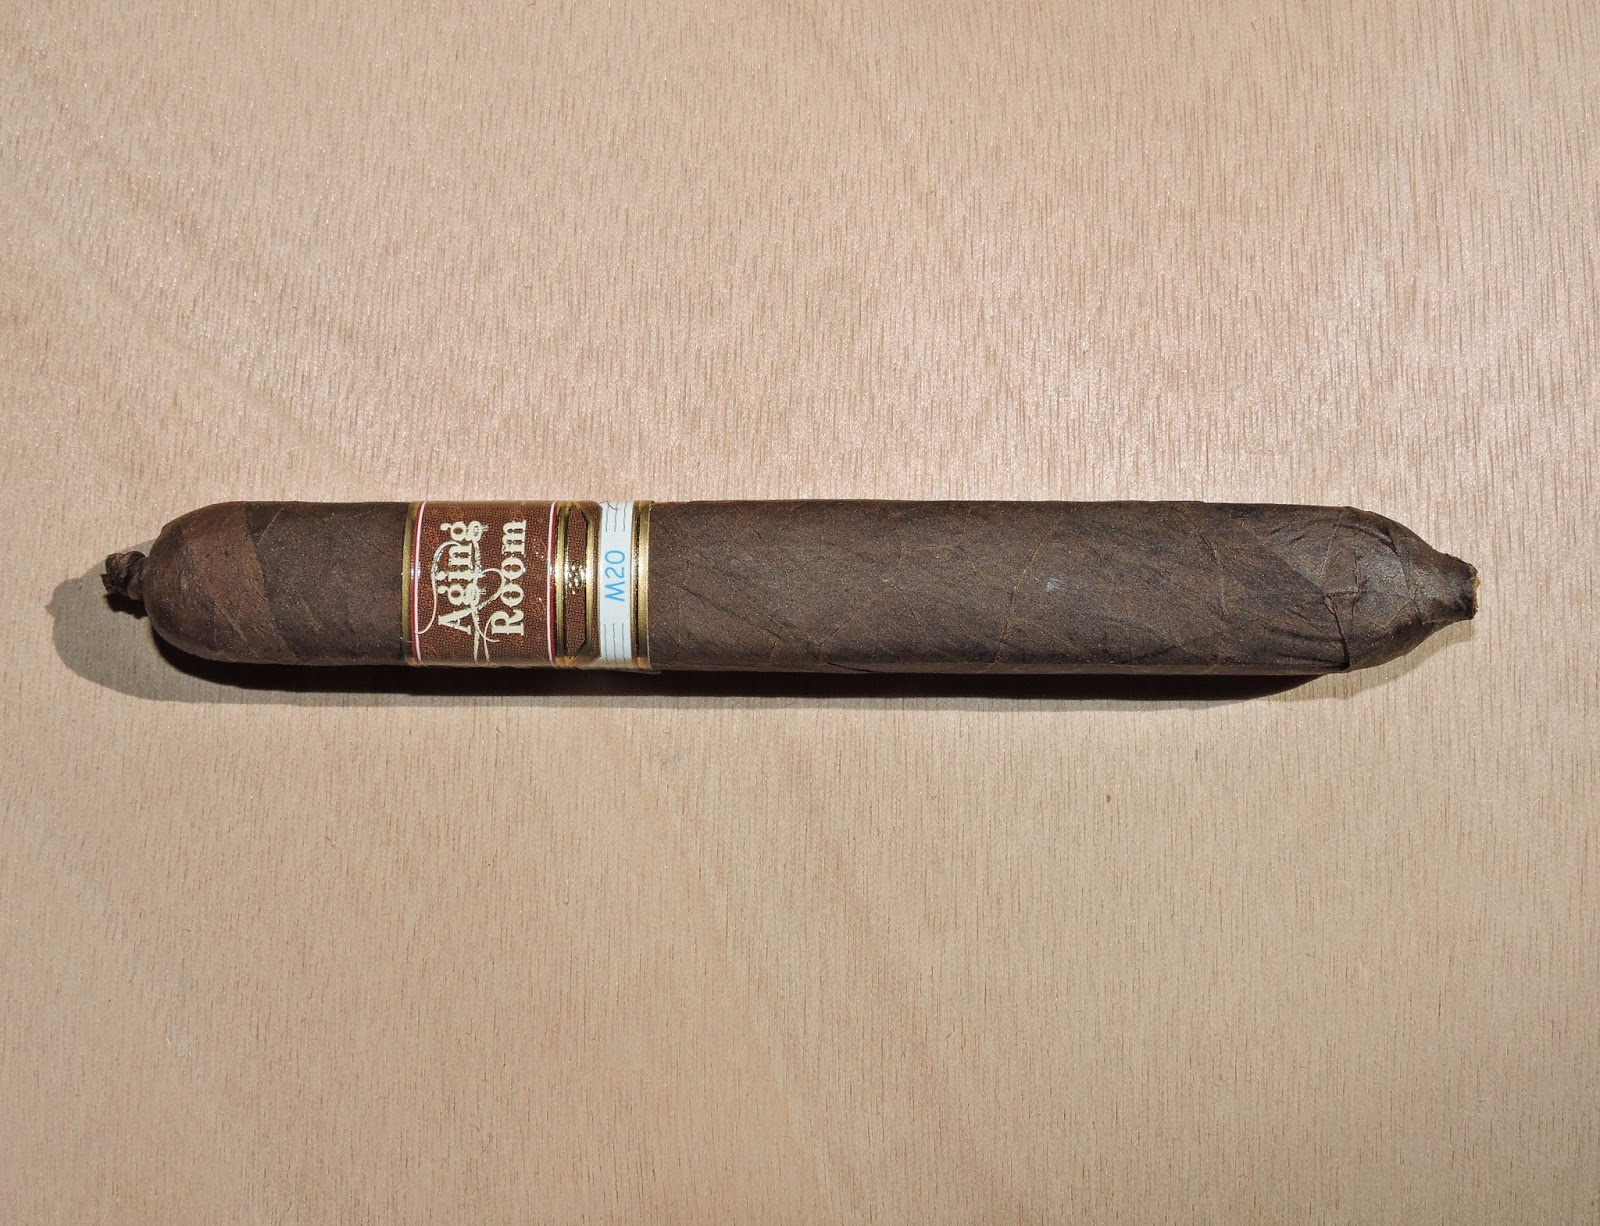 Cigar Review: Aging Room M20 ffortissimo by Boutique Blends Cigars